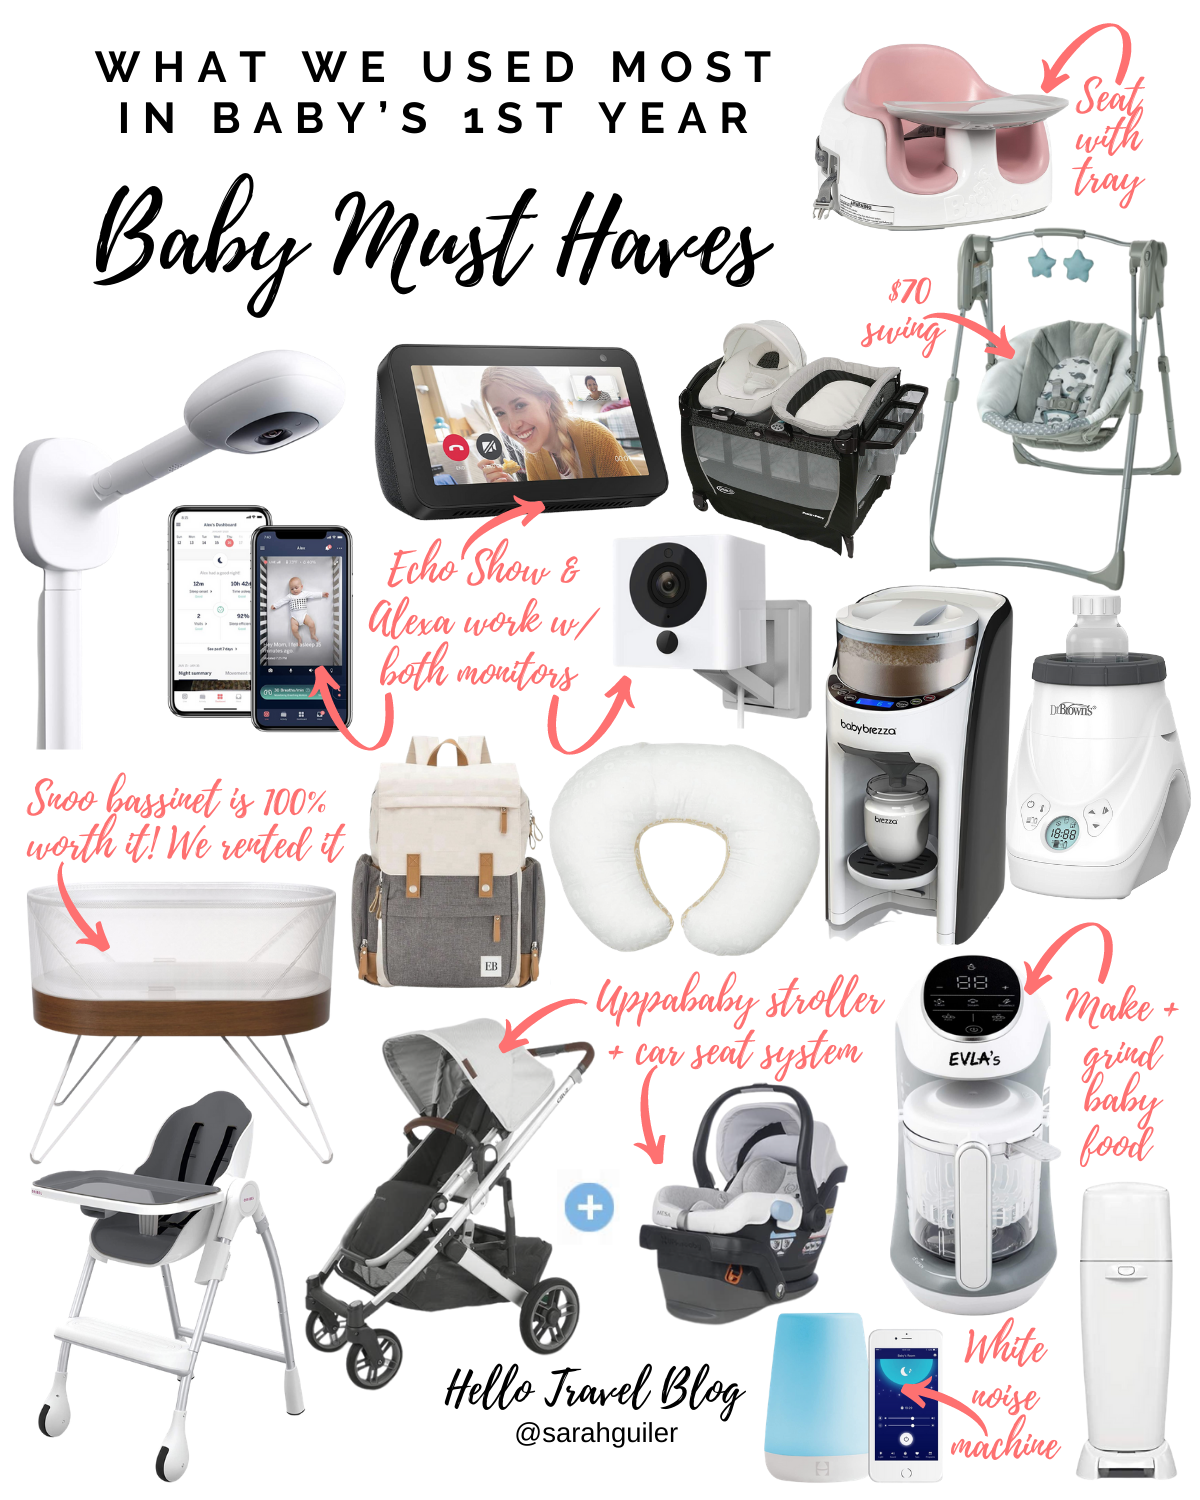 Baby essentials we used the most during the first year